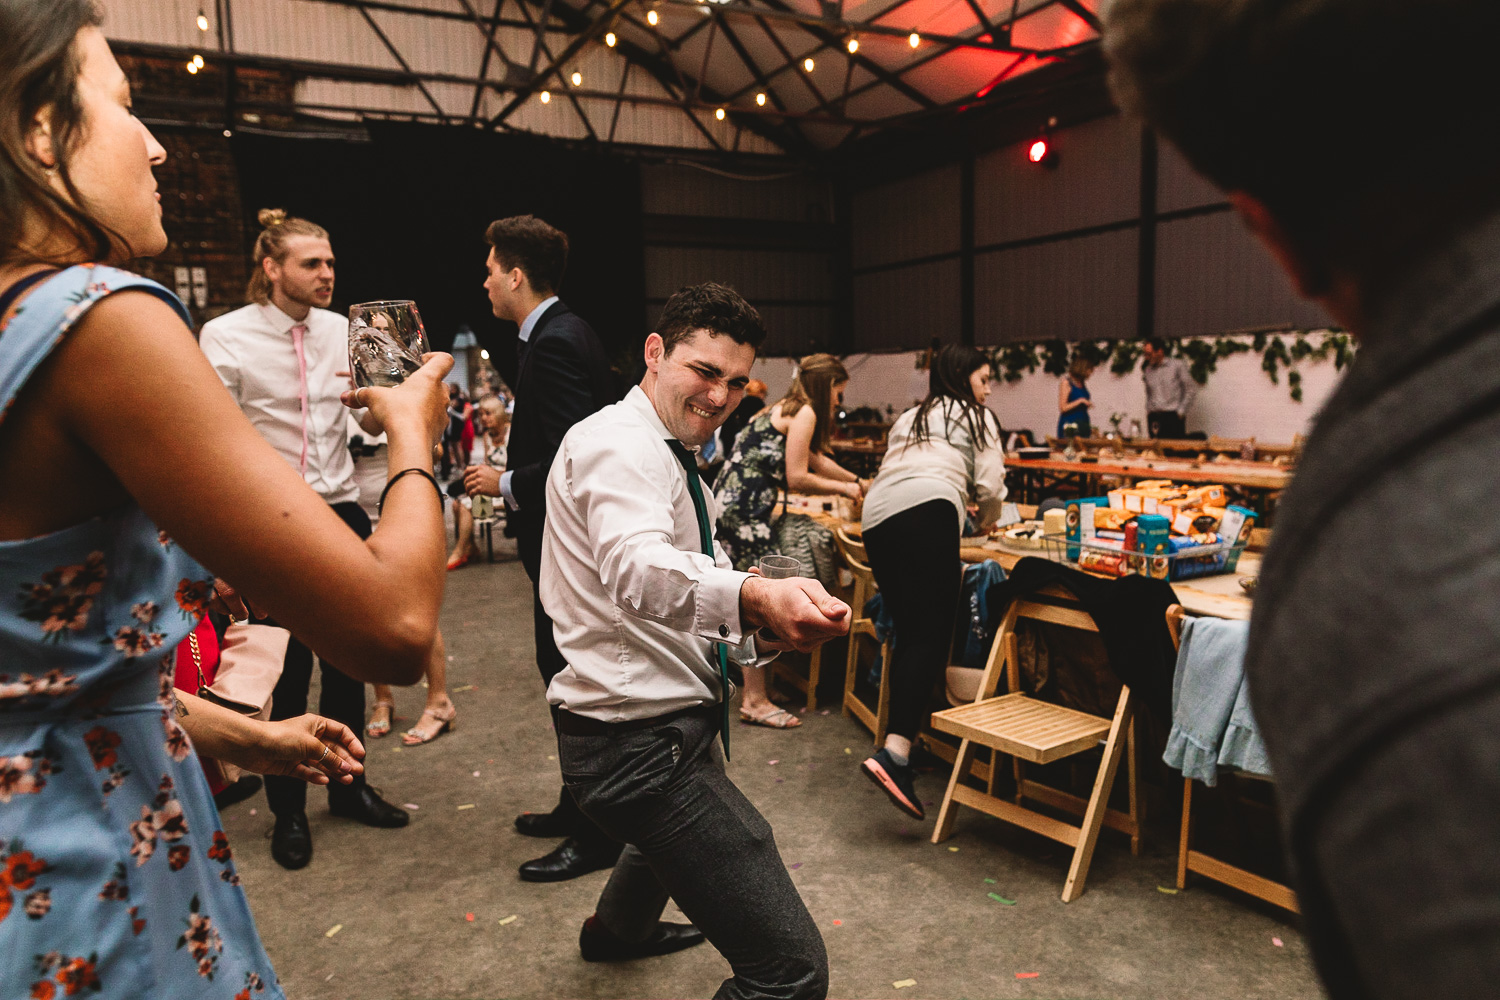 Guest dancing doing a pulling move to another guest on fun dance floor at alternative warehouse wedding venue 92 burton road